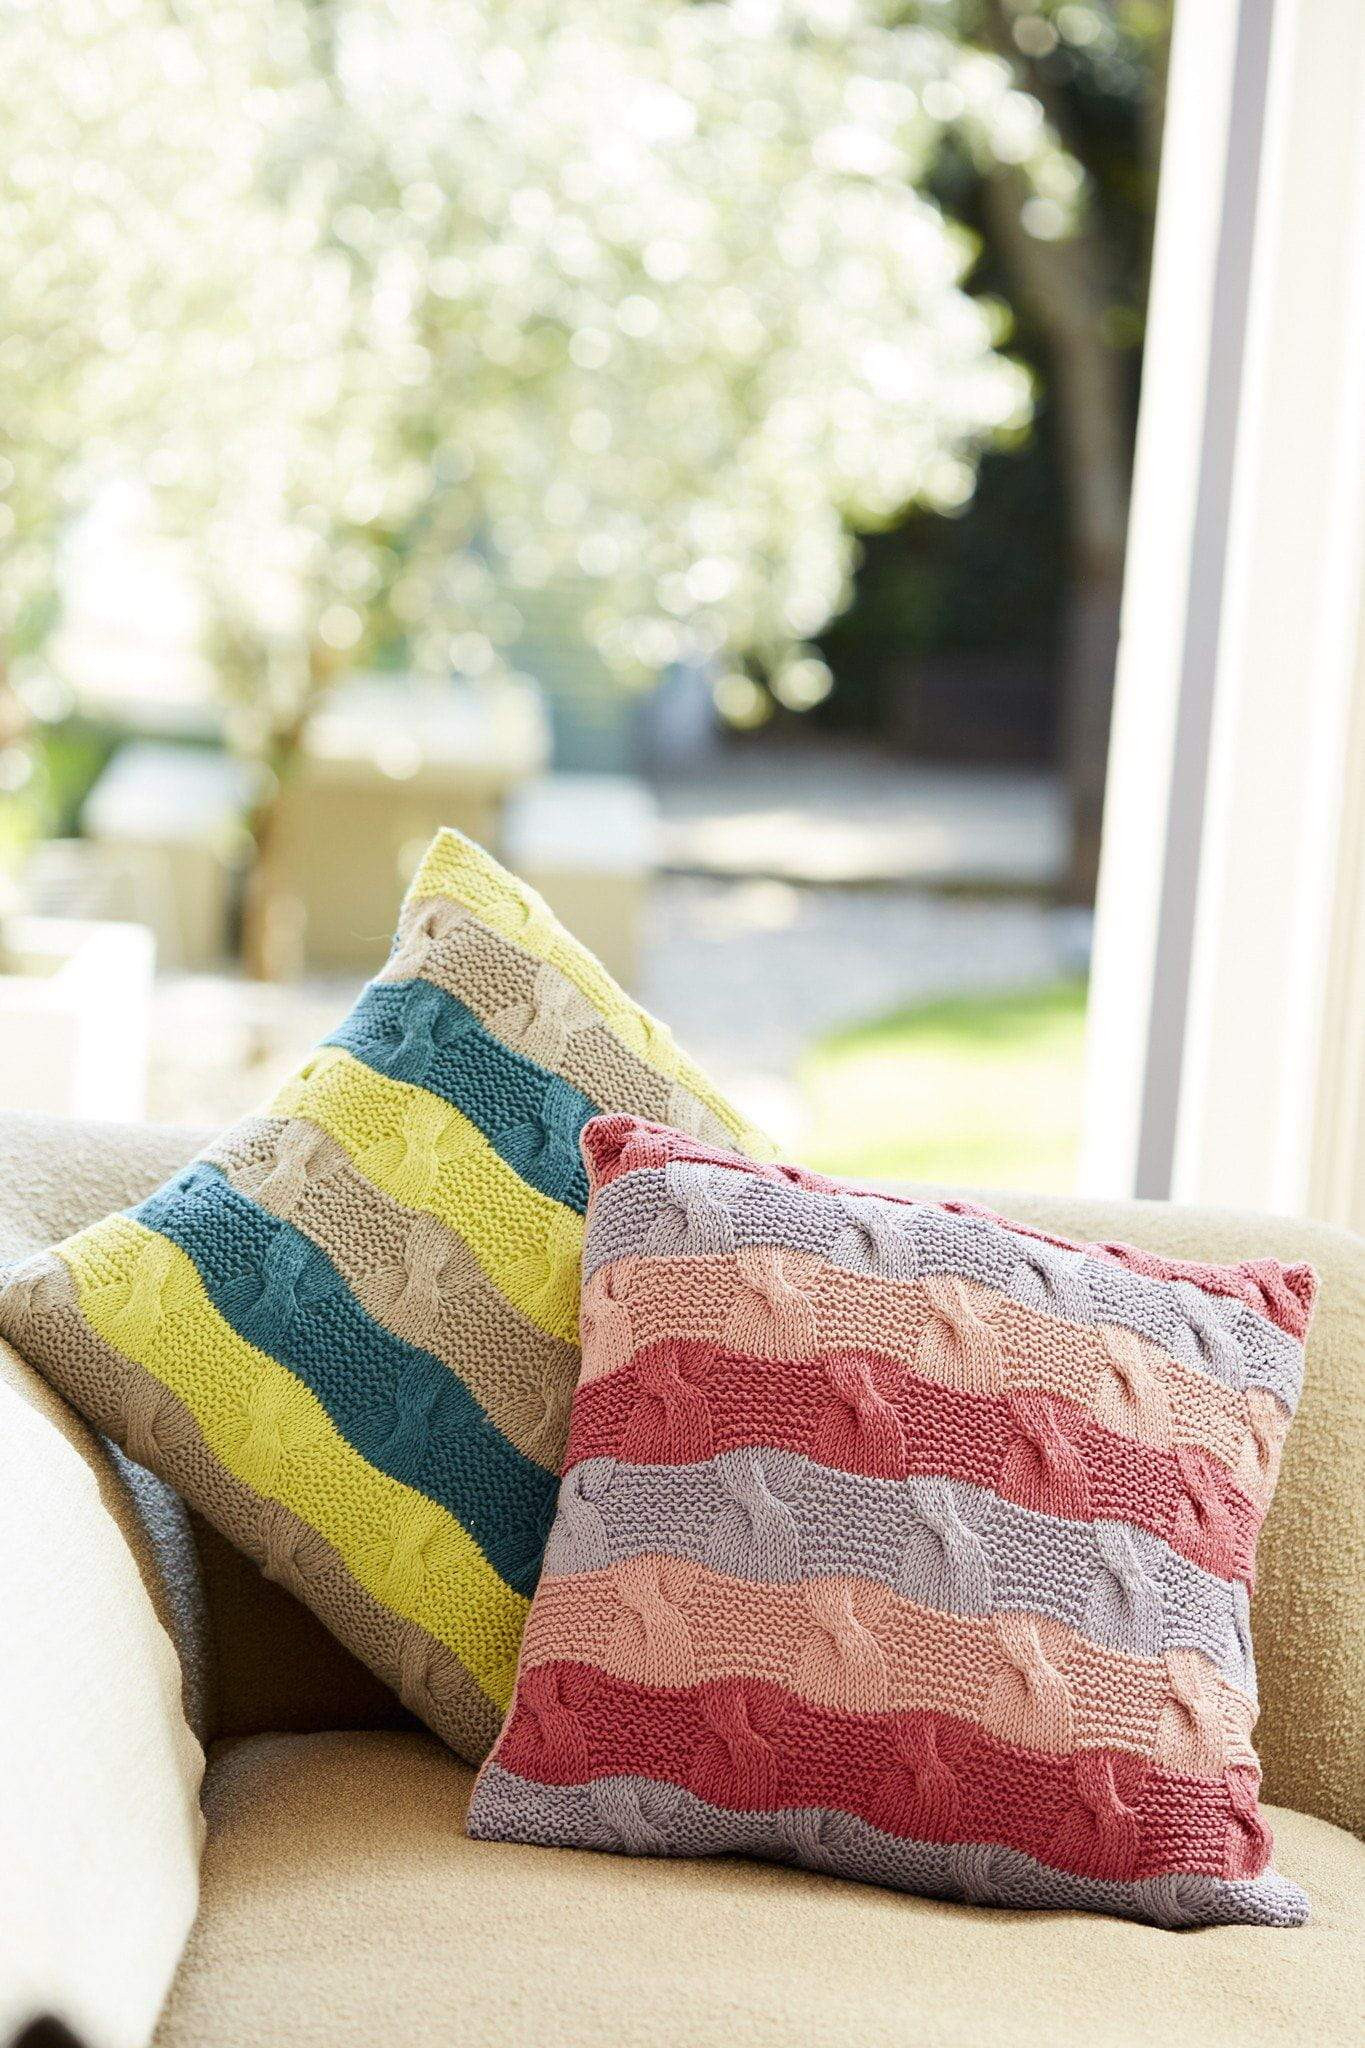 Knitting Pattern For Cushion Cover With Cables Striped Cushions Knitting Patterns